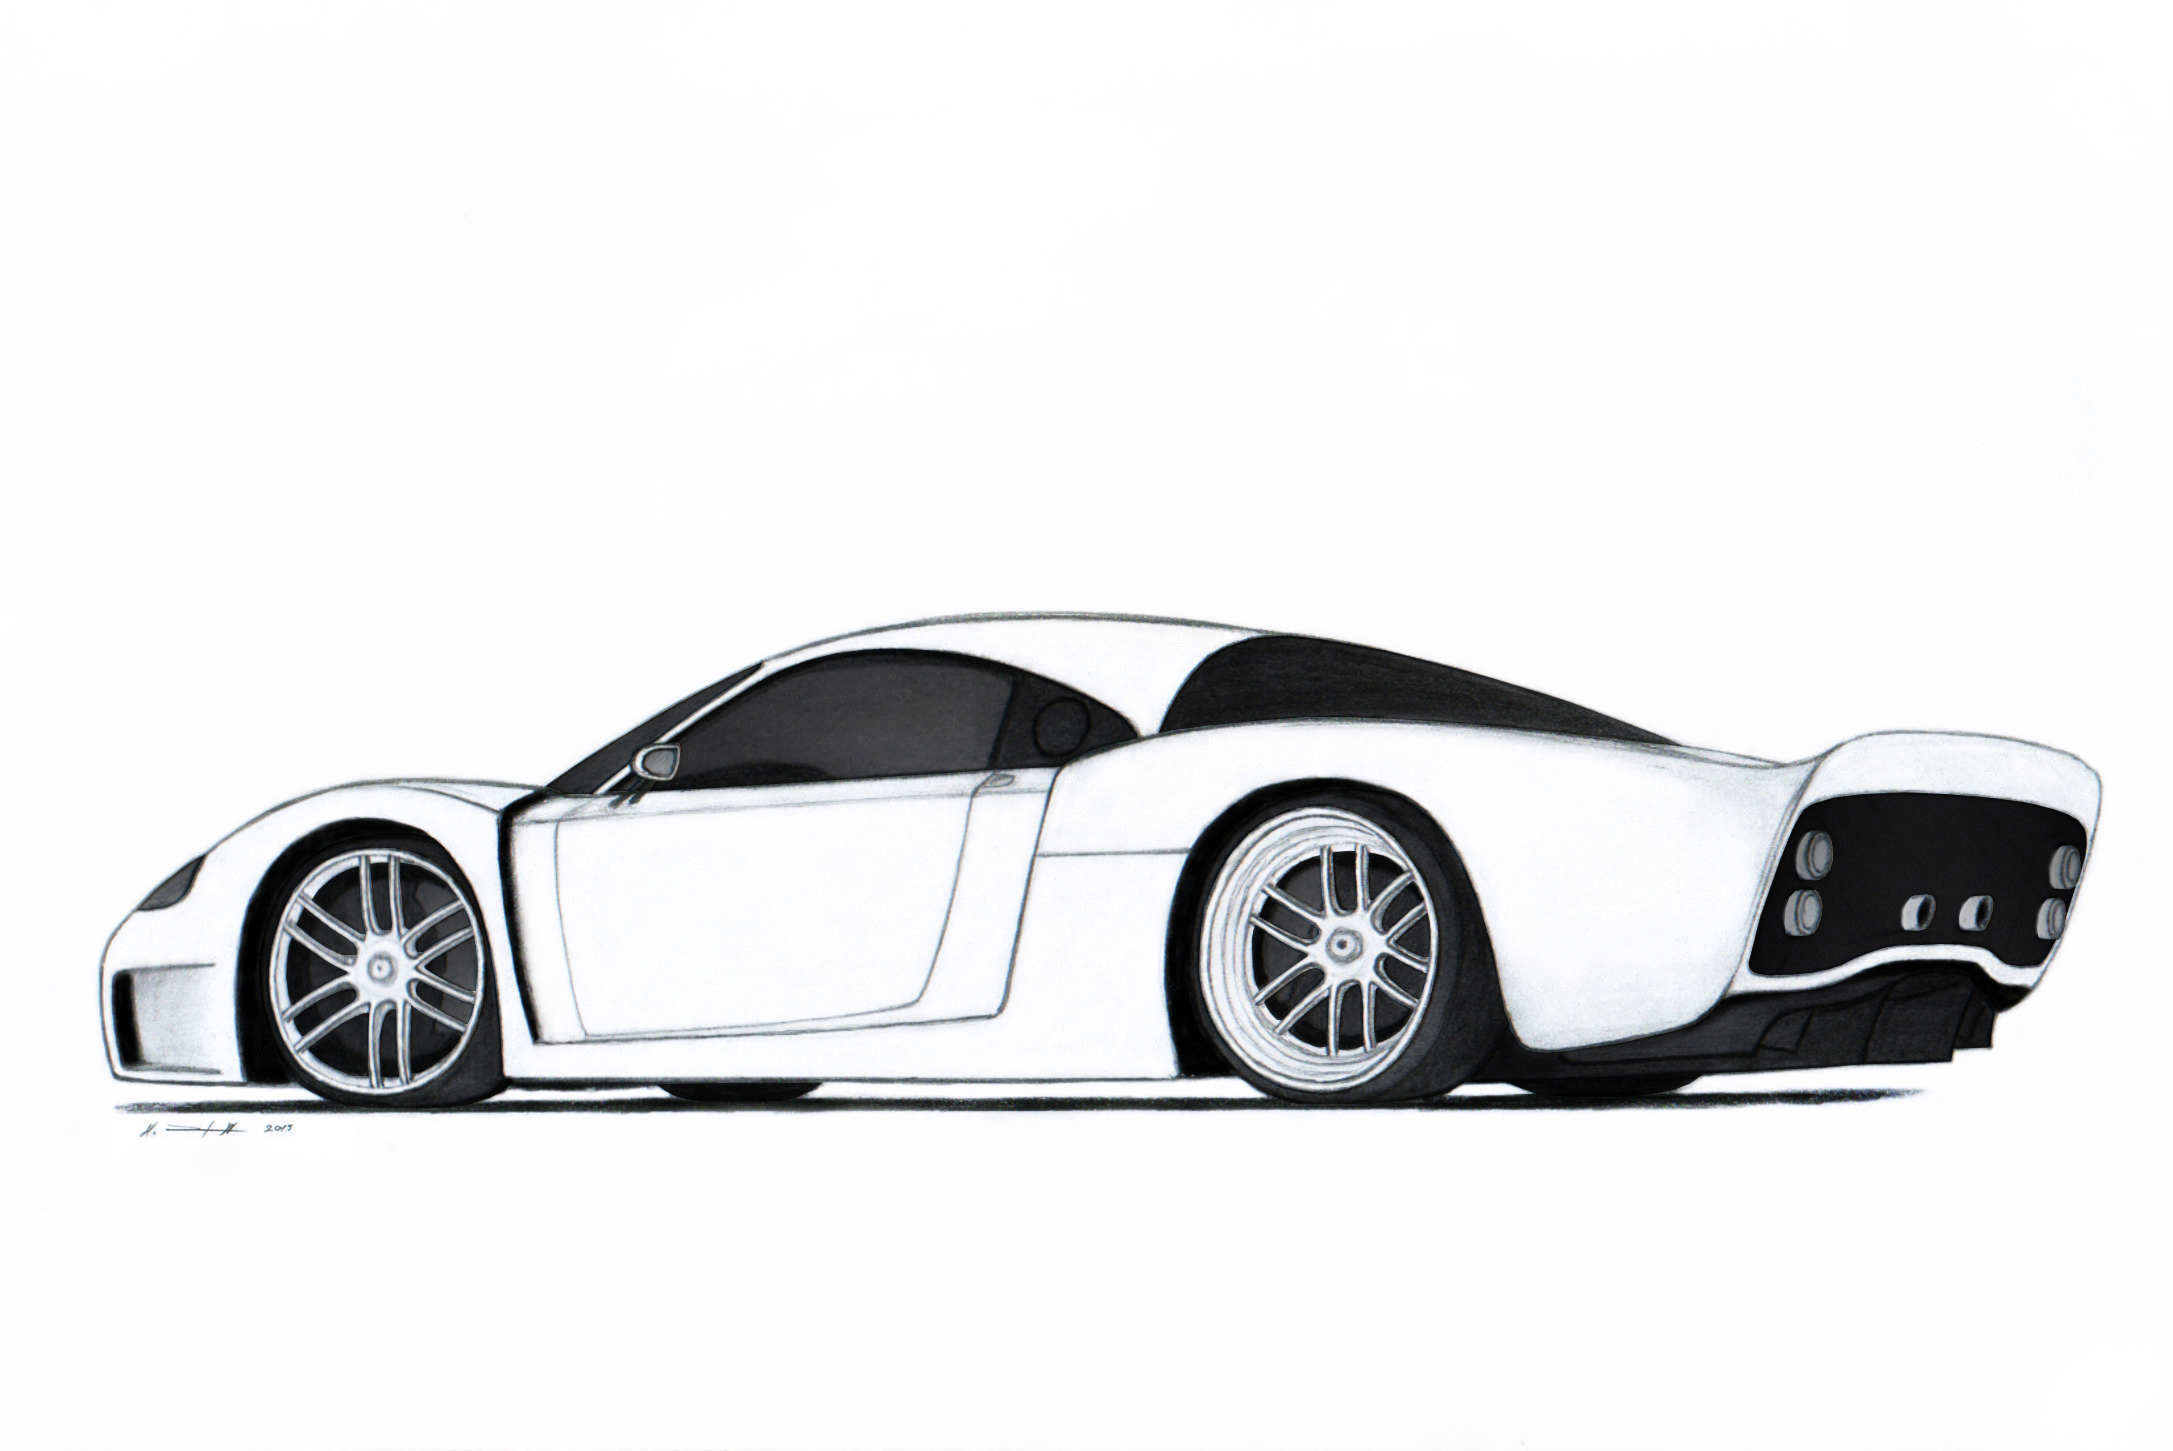 The Supercar By Vertualissimo On Deviantart